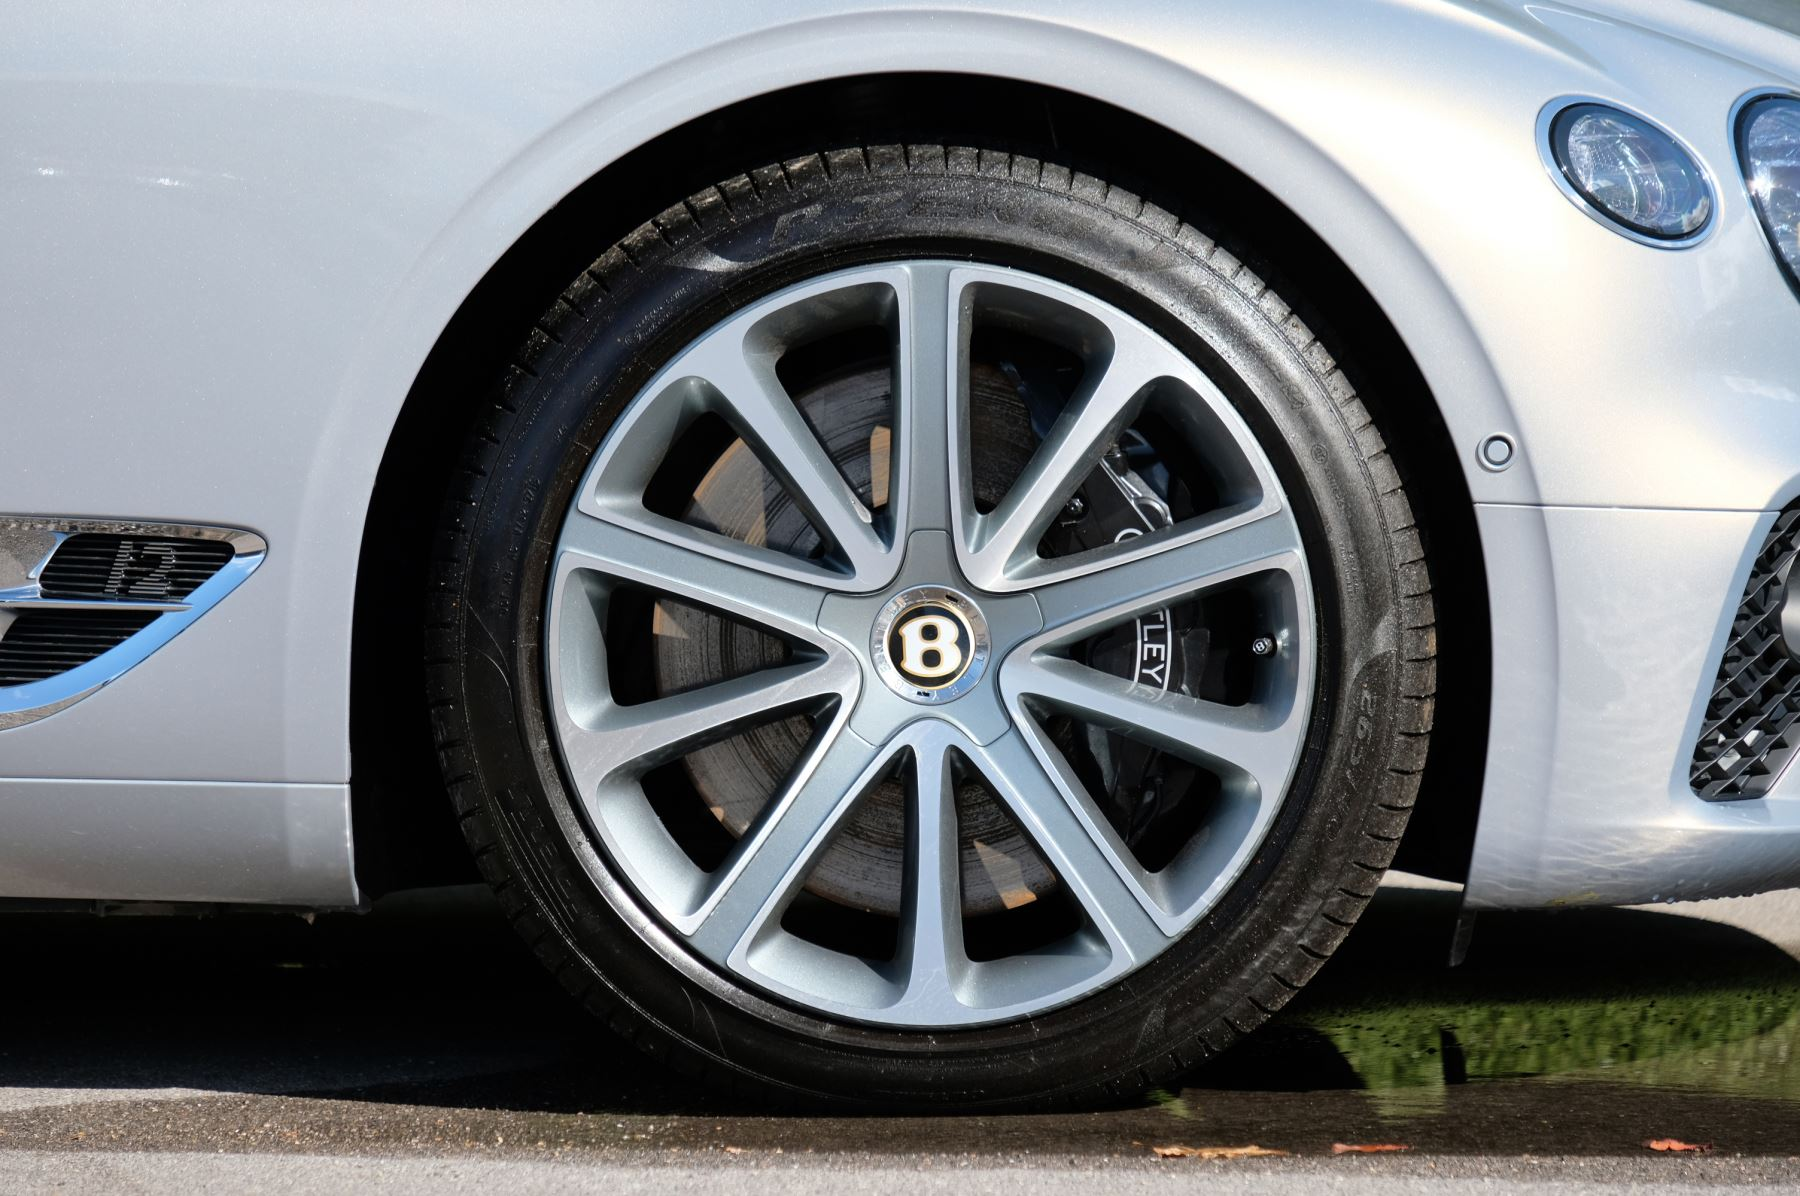 Bentley Continental GT 6.0 W12 Centenary, City and Touring Specification image 9